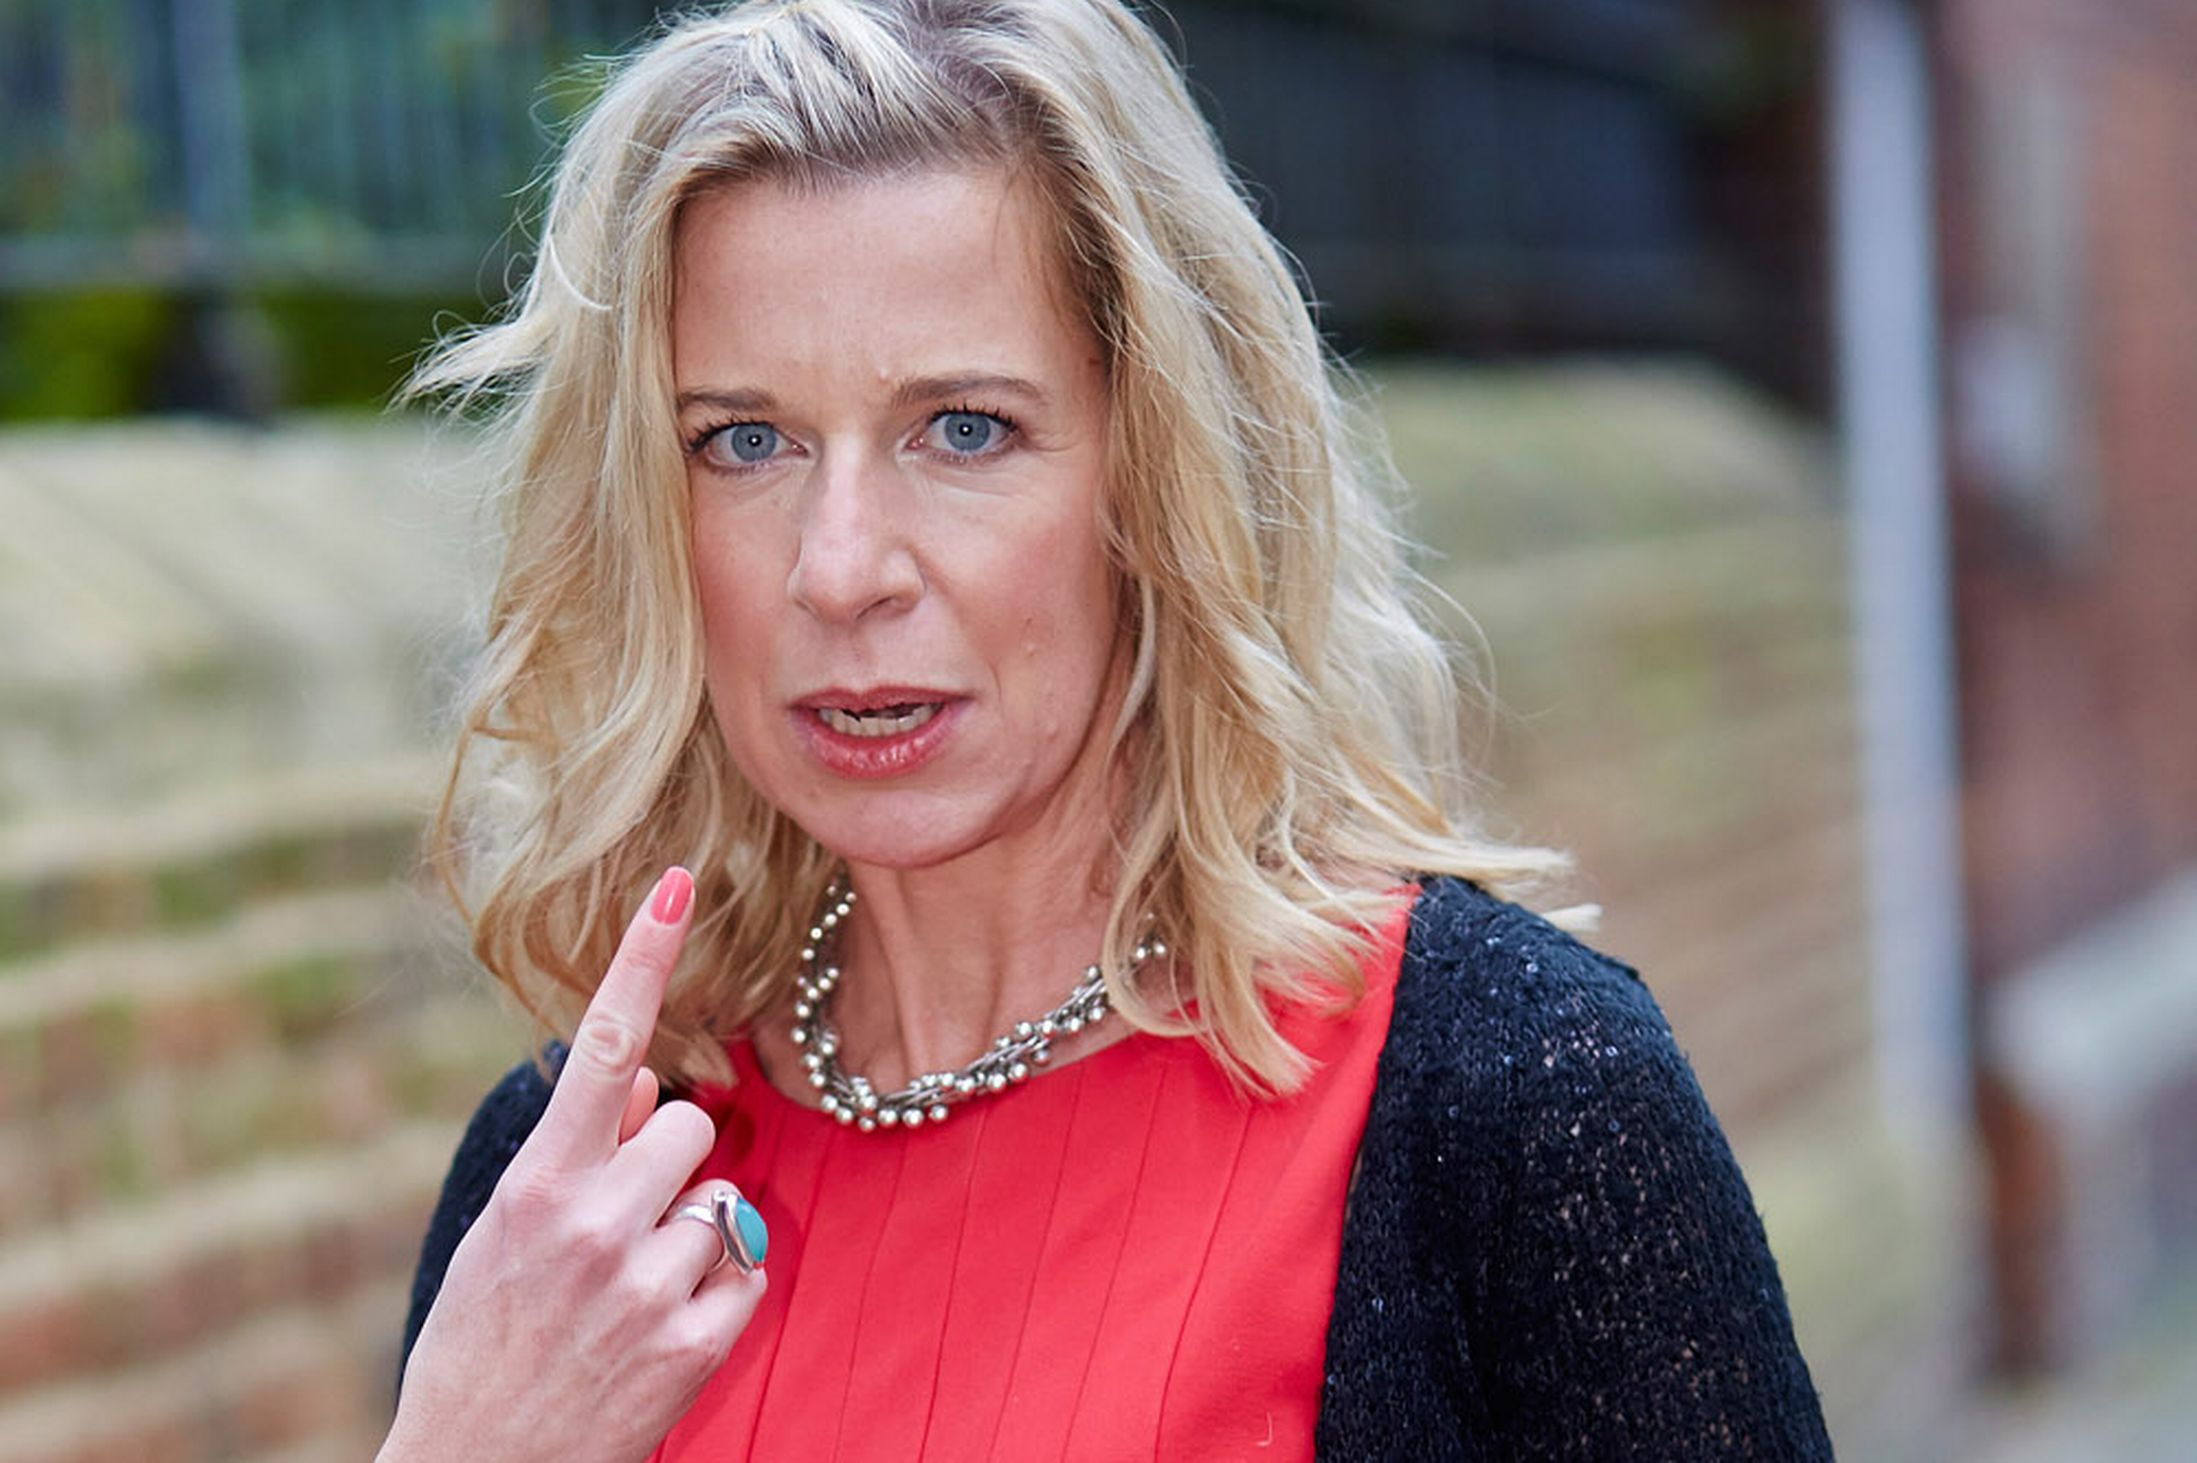 Katie-Hopkins-at-The-Oxford-Union